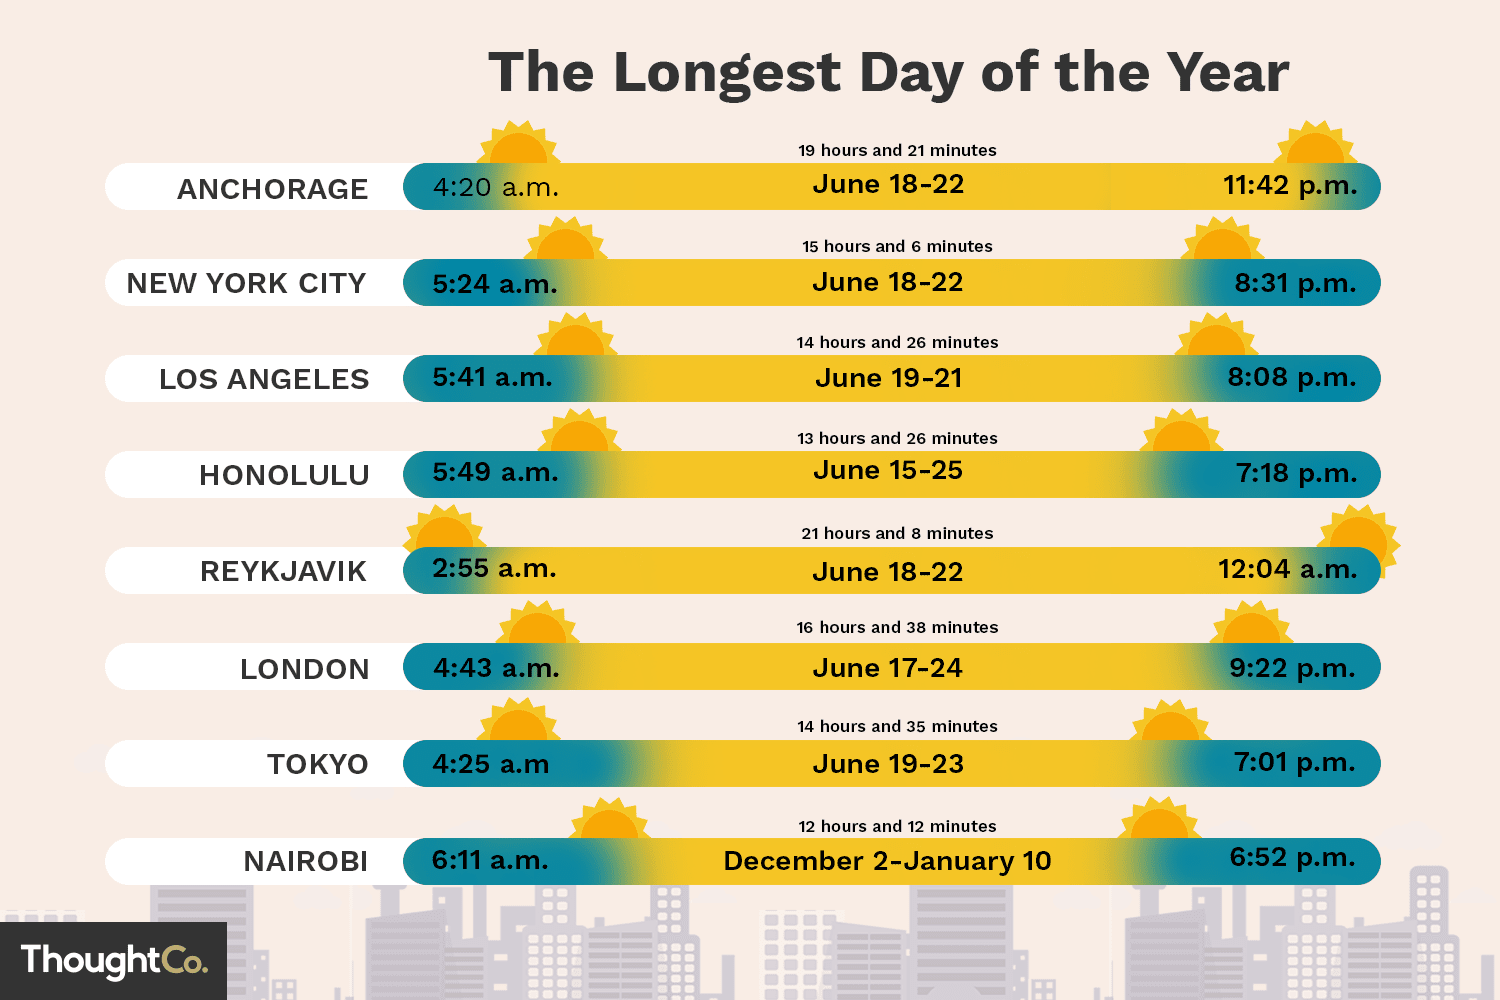 The Longest Day Of The Year In Different Cities